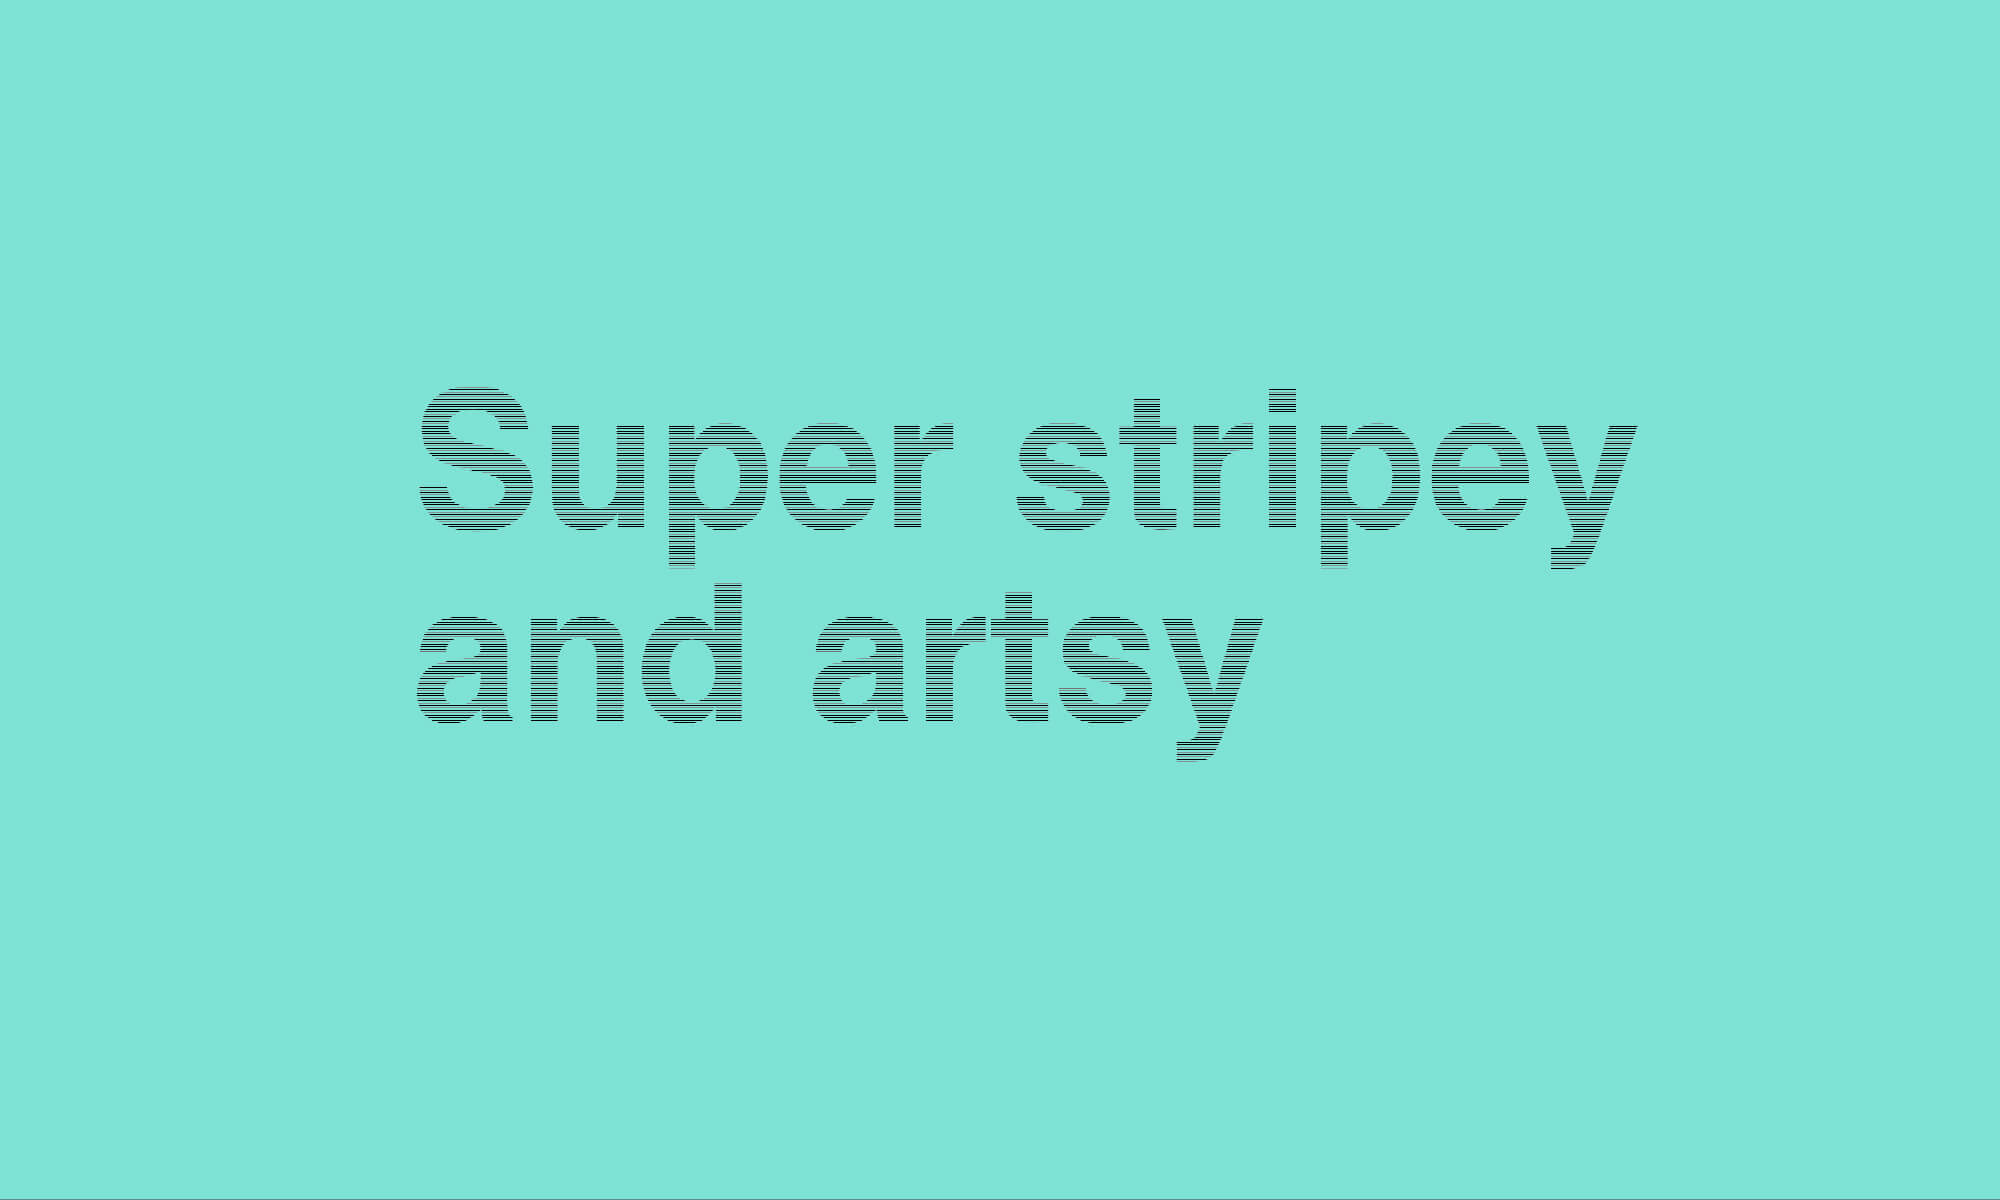 Stripey text with CSS blending